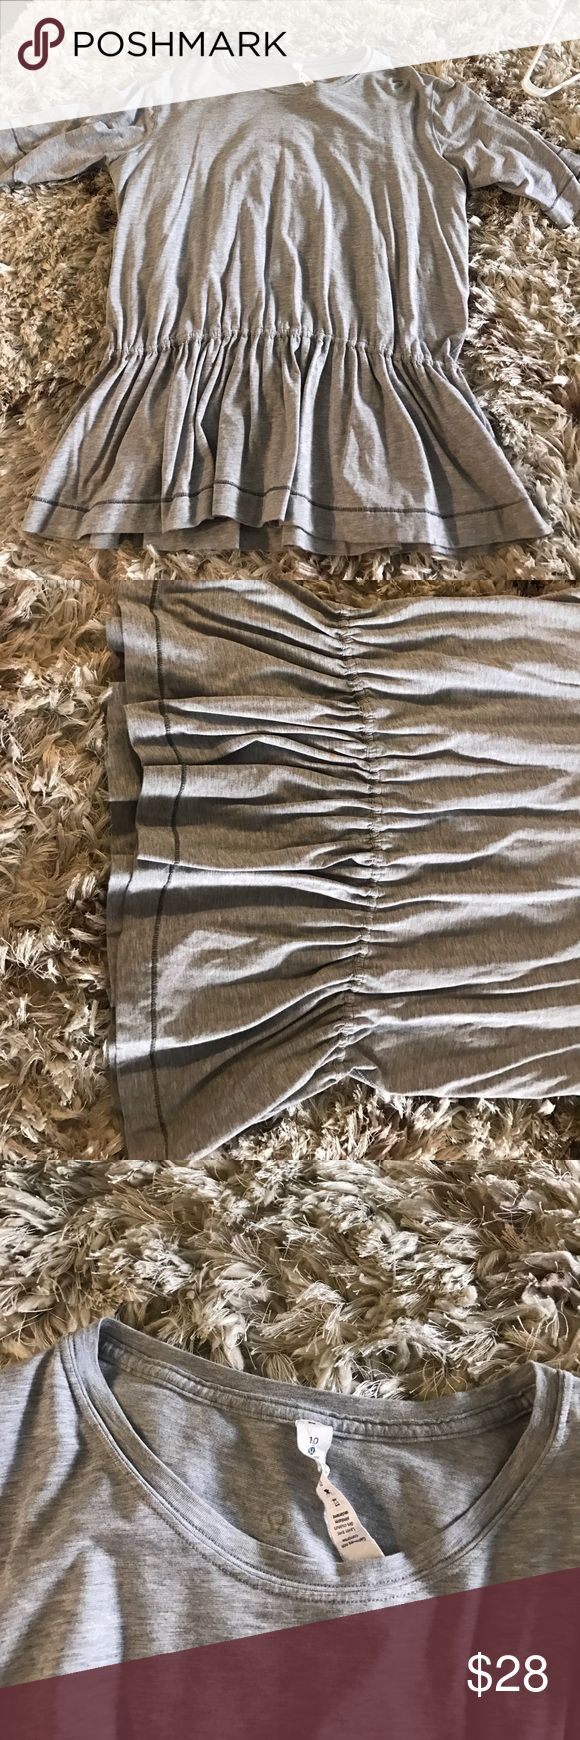 Lulu Lemon Workout Too Worn very lightly. Super cute with workout pants lululemon athletica Pants Leggings